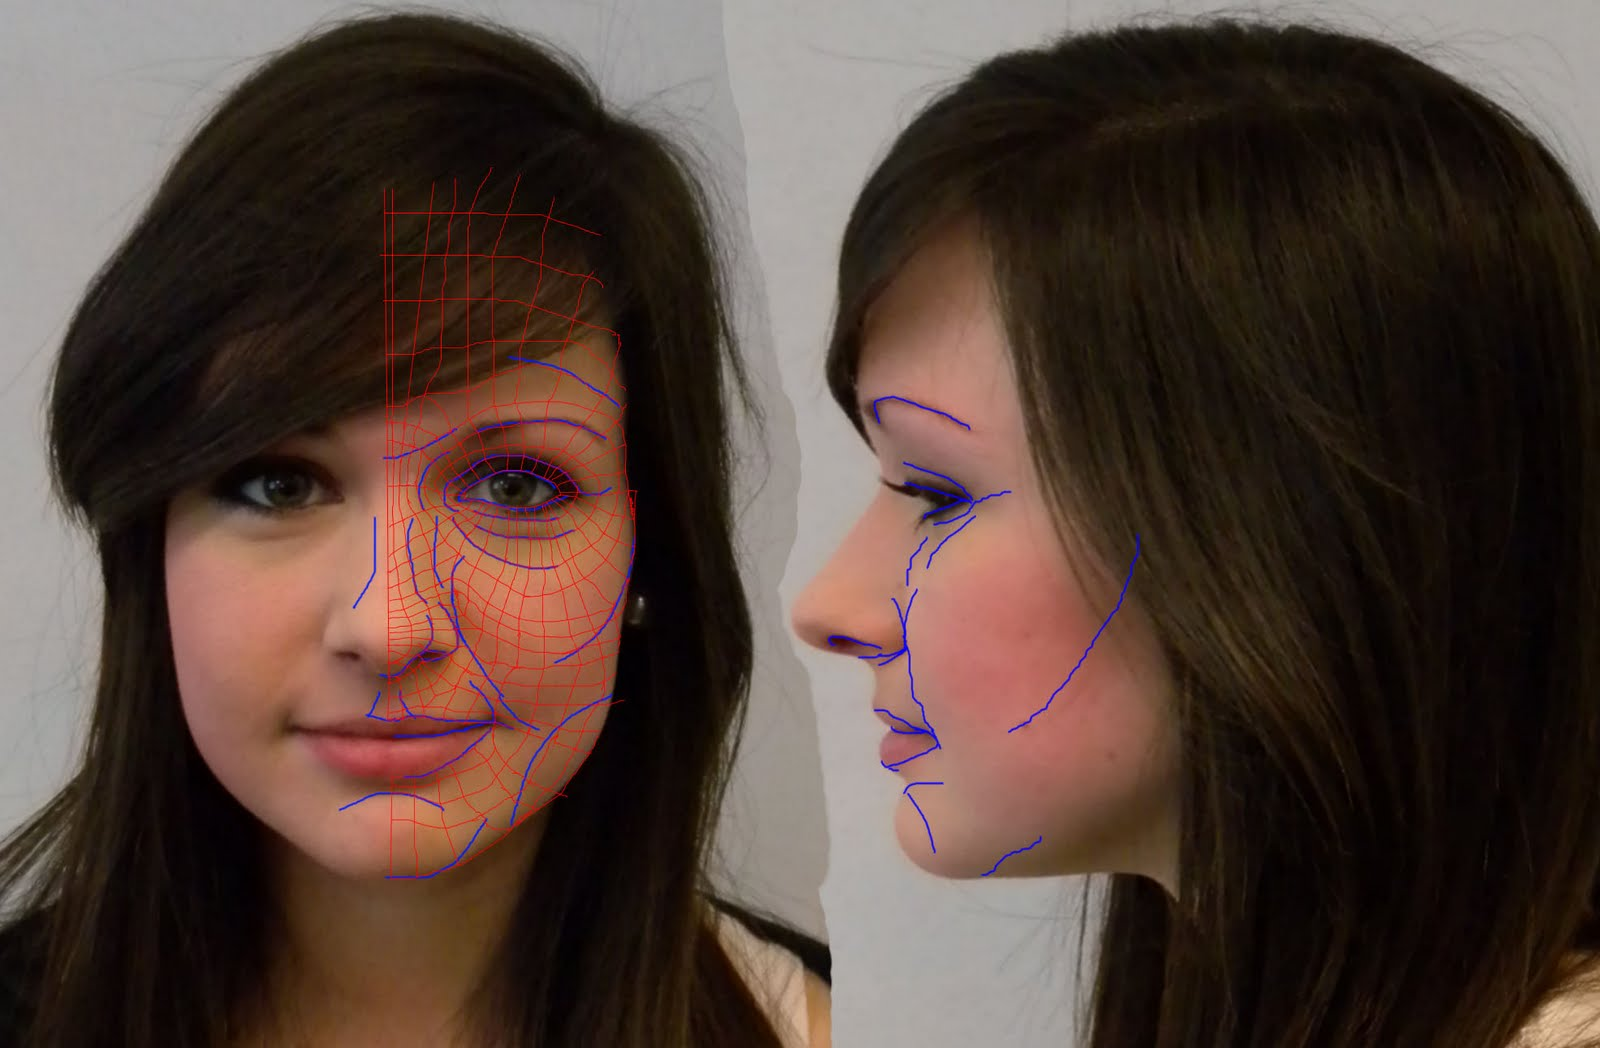 female face reference front and side modelling a head reference